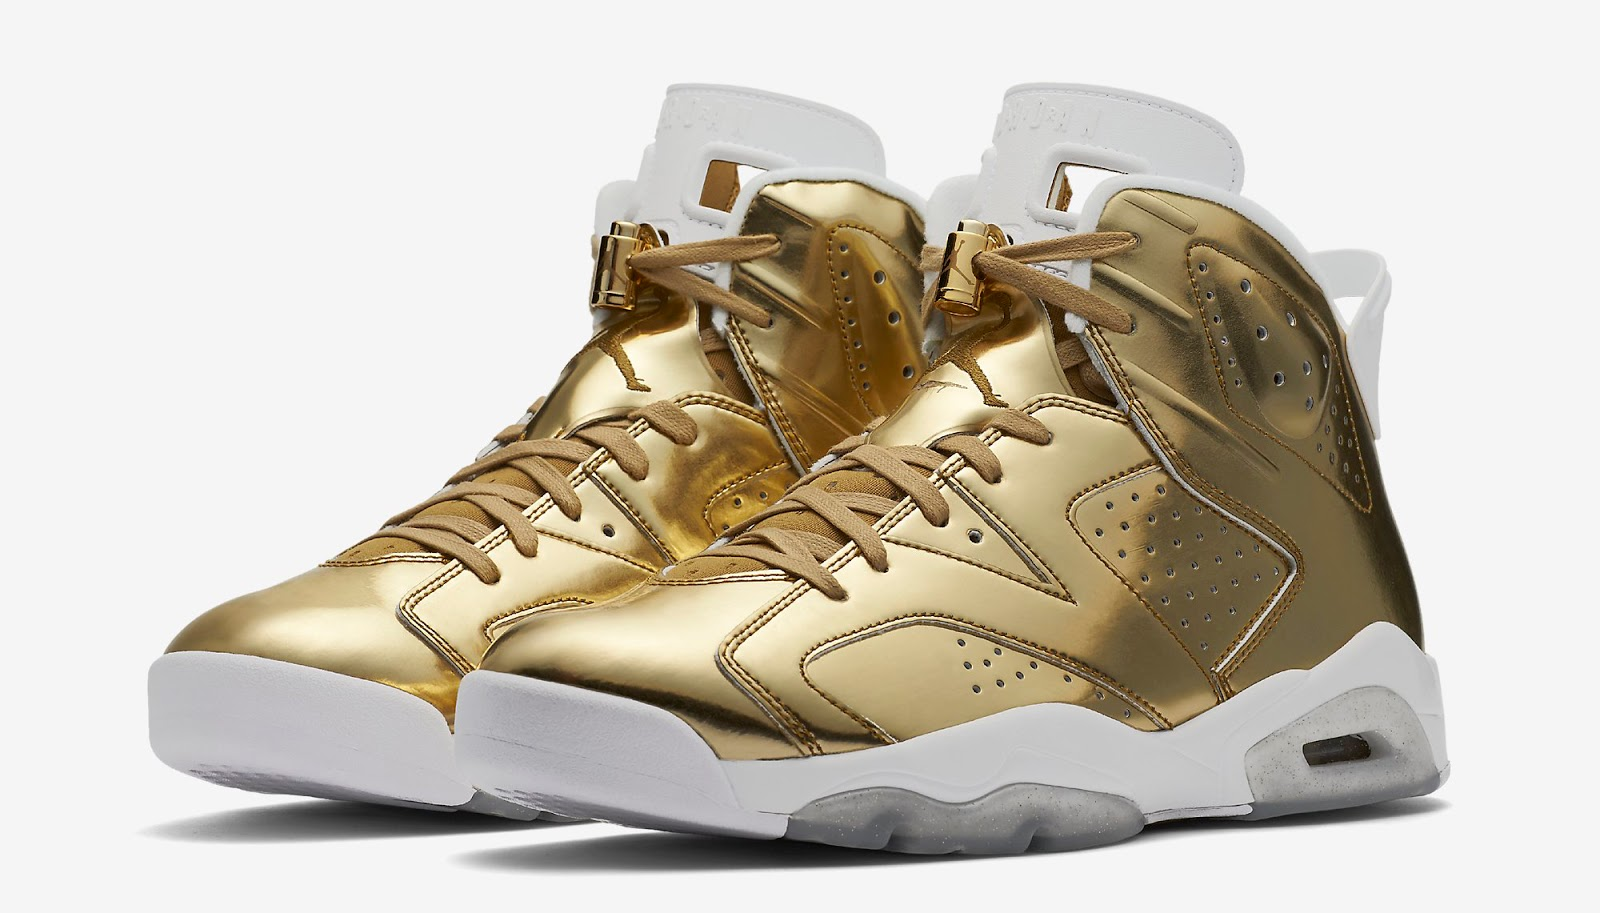 0cbf97bcb47 This Air Jordan 6 Retro Pinnacle comes in a metallic gold and white  colorway. Featuring a shiny liquid metallic gold upper with white accents  and speckles ...